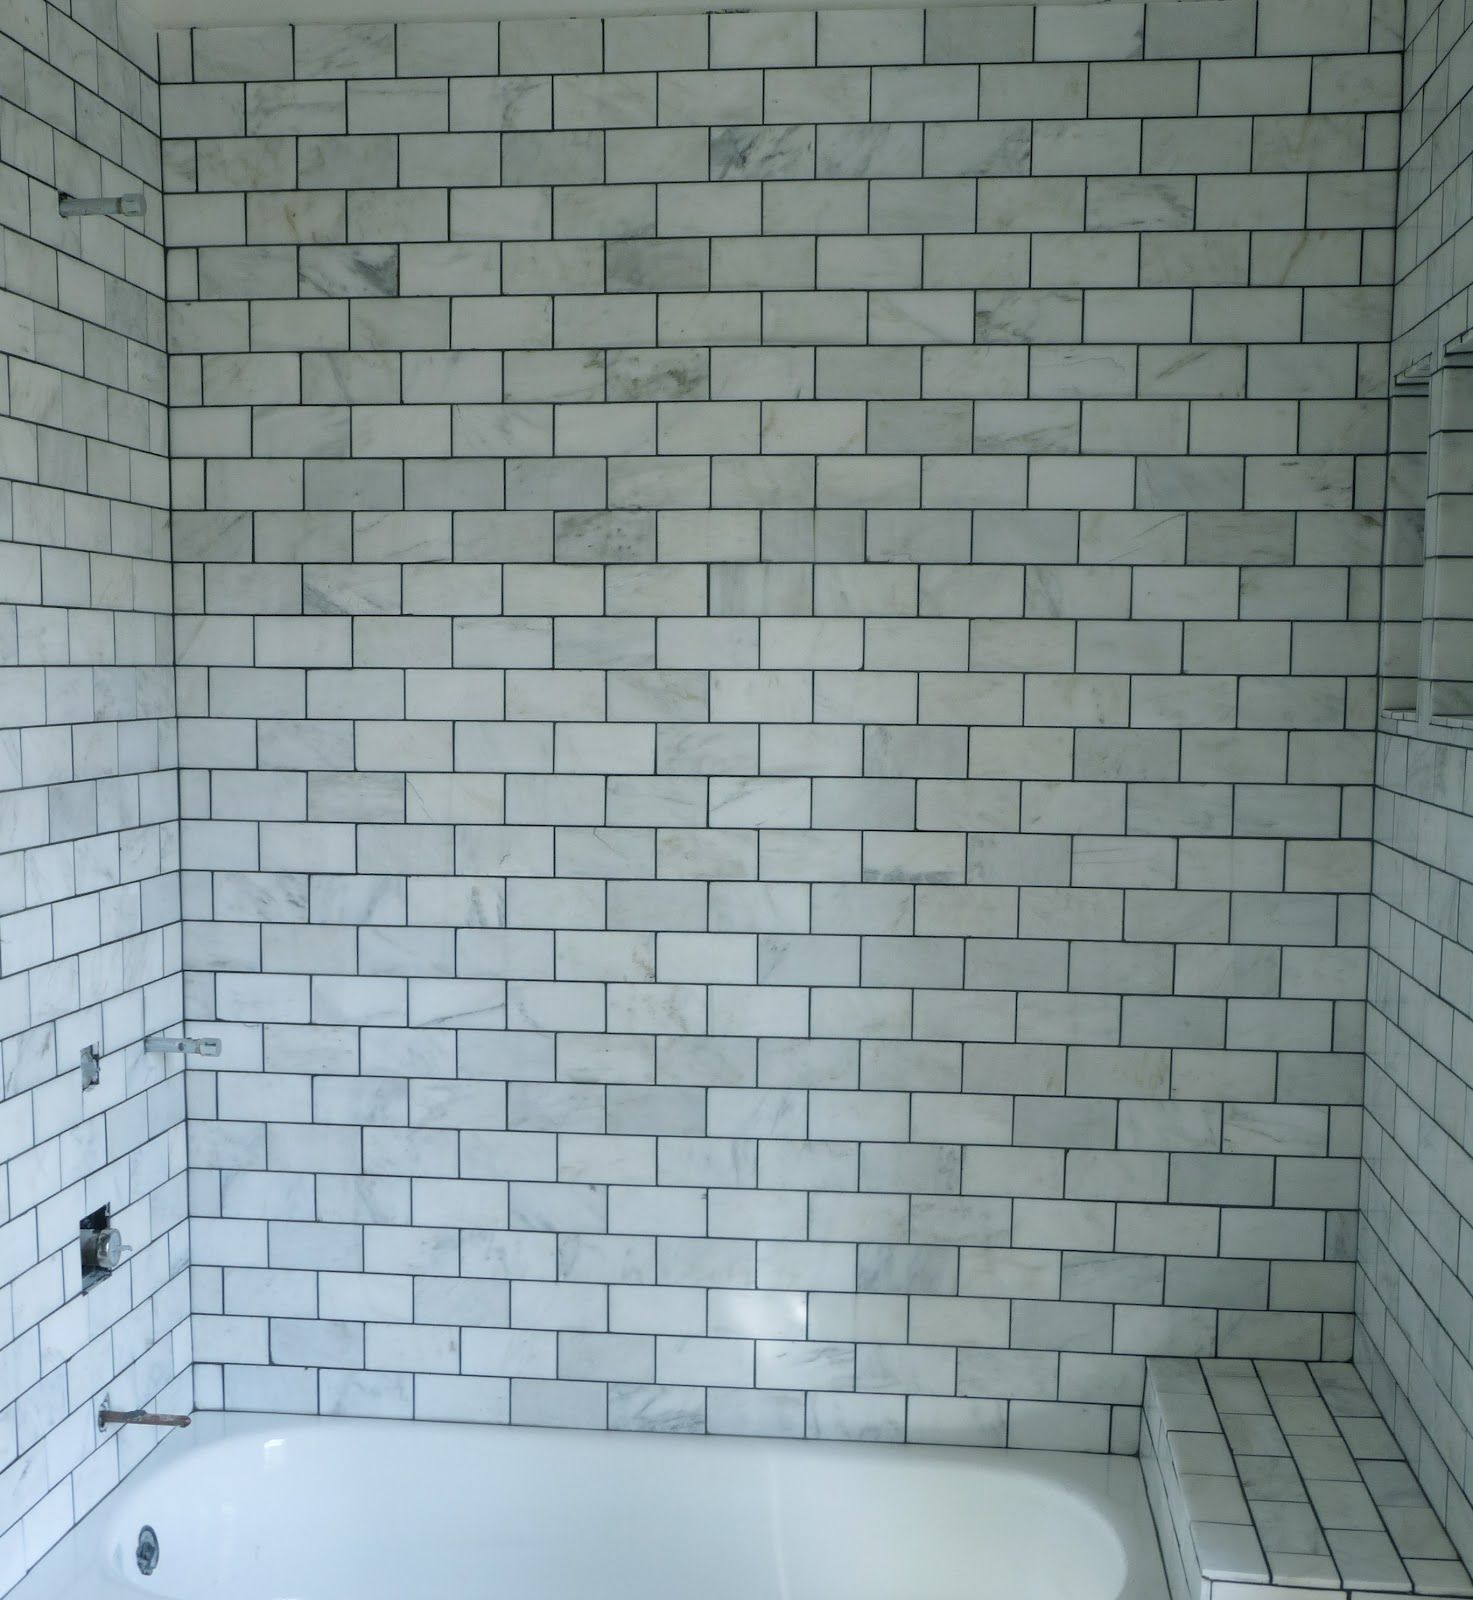 Representation Of Marble Subway Tile Shower Offering The Sense Of Elegance Blue Shower Tile Blue Subway Tile White Marble Tiles